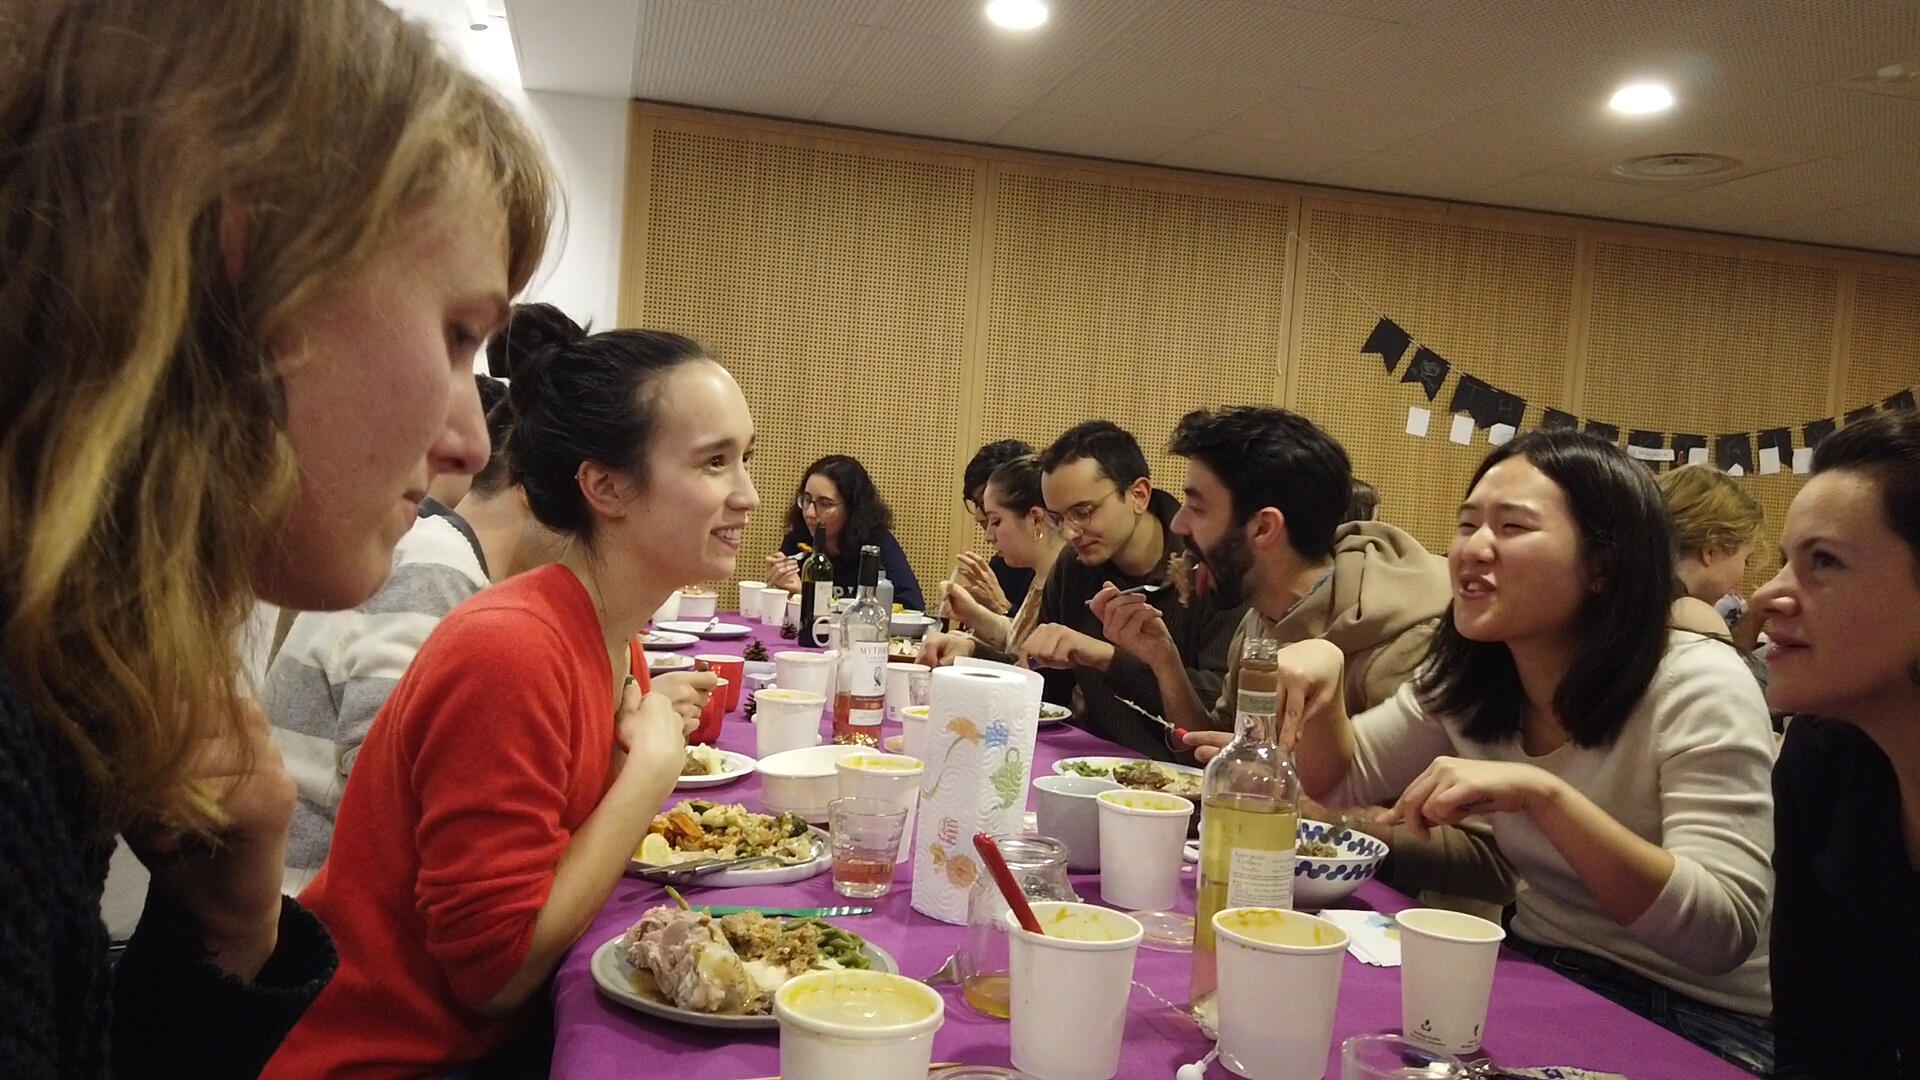 American students hold a large Thanksgiving banquet at the American Foundation in Paris